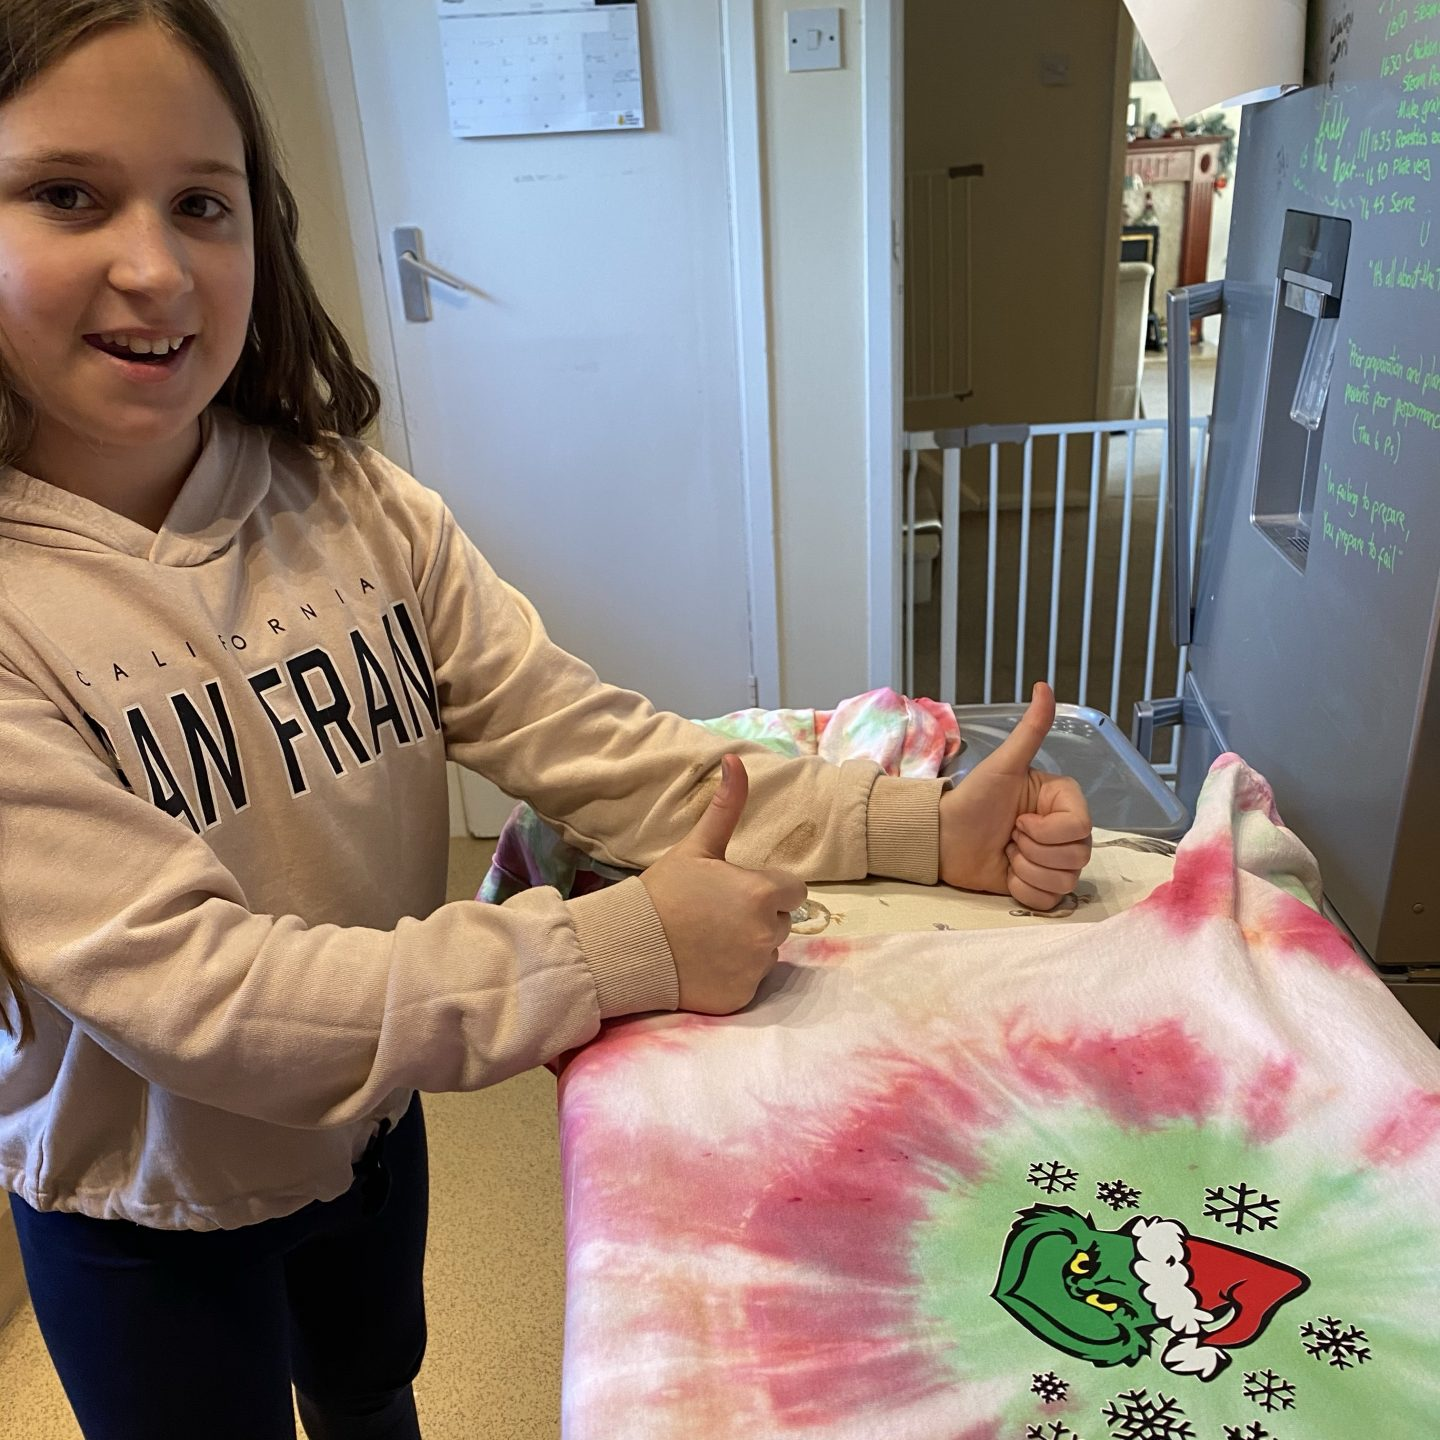 A young girl by ironing board with her tie dye top